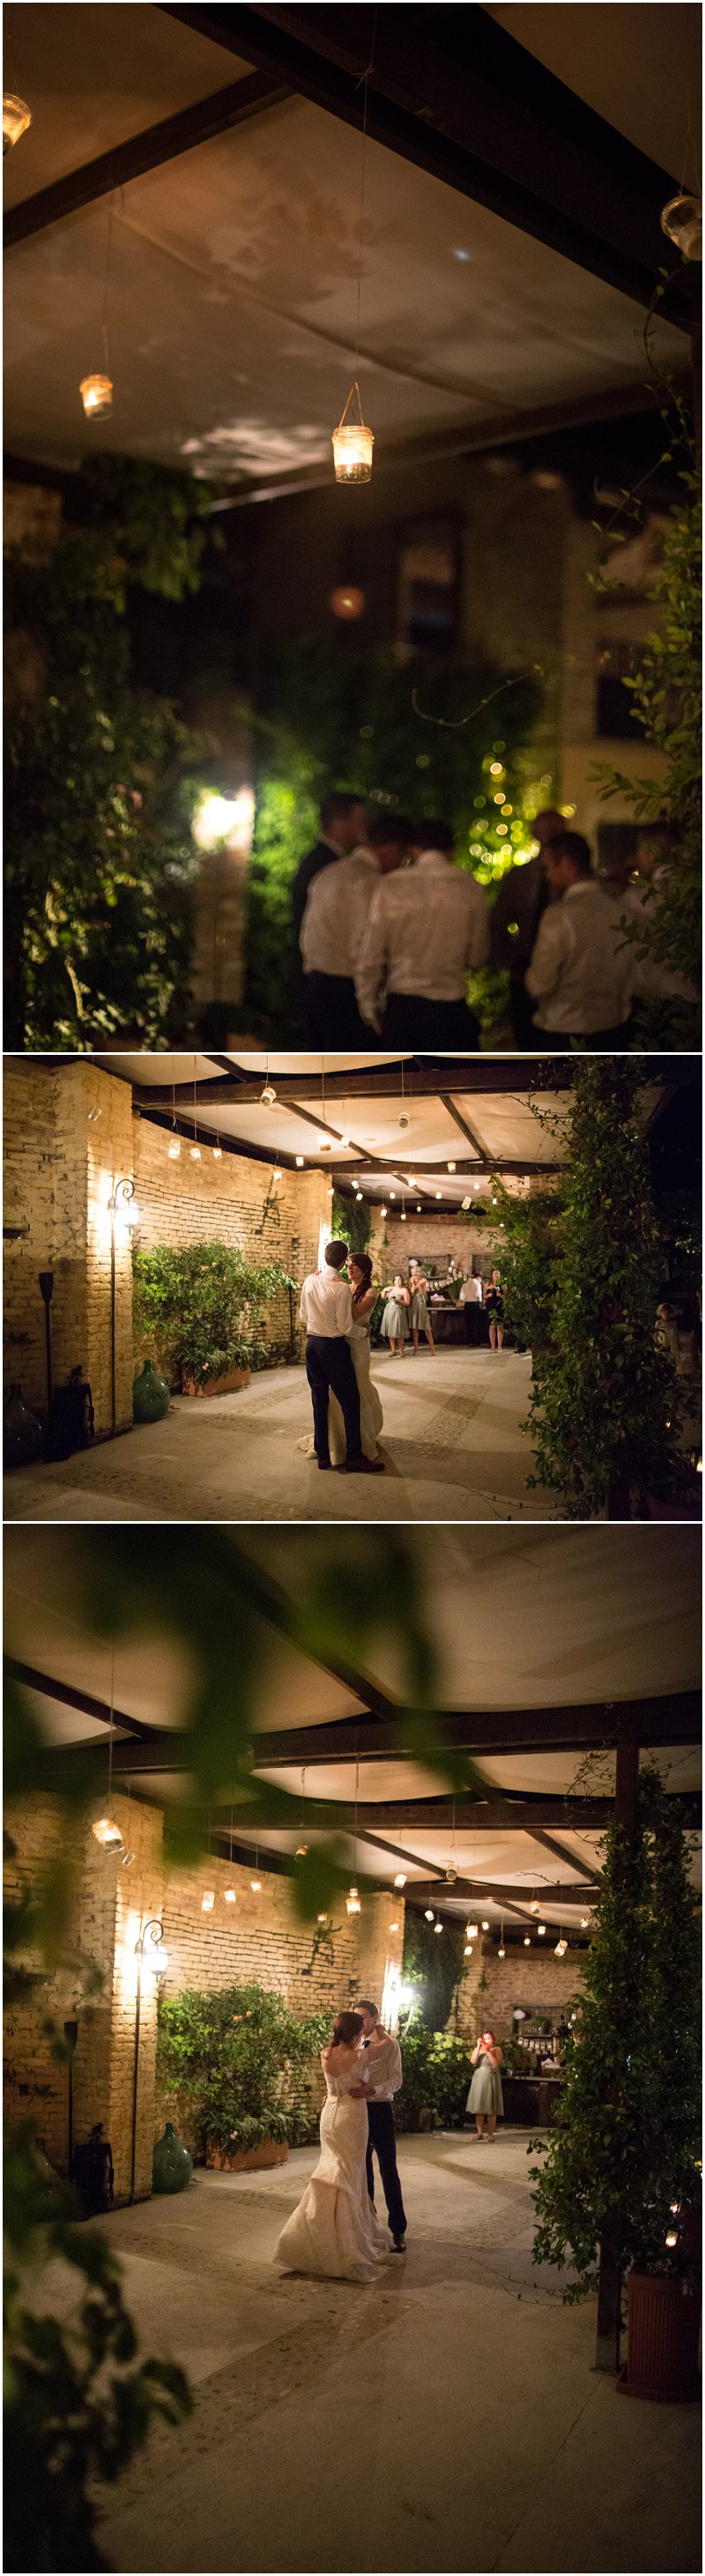 First Dance by Candle Light at La Villa, Piedmont Italy Wedding